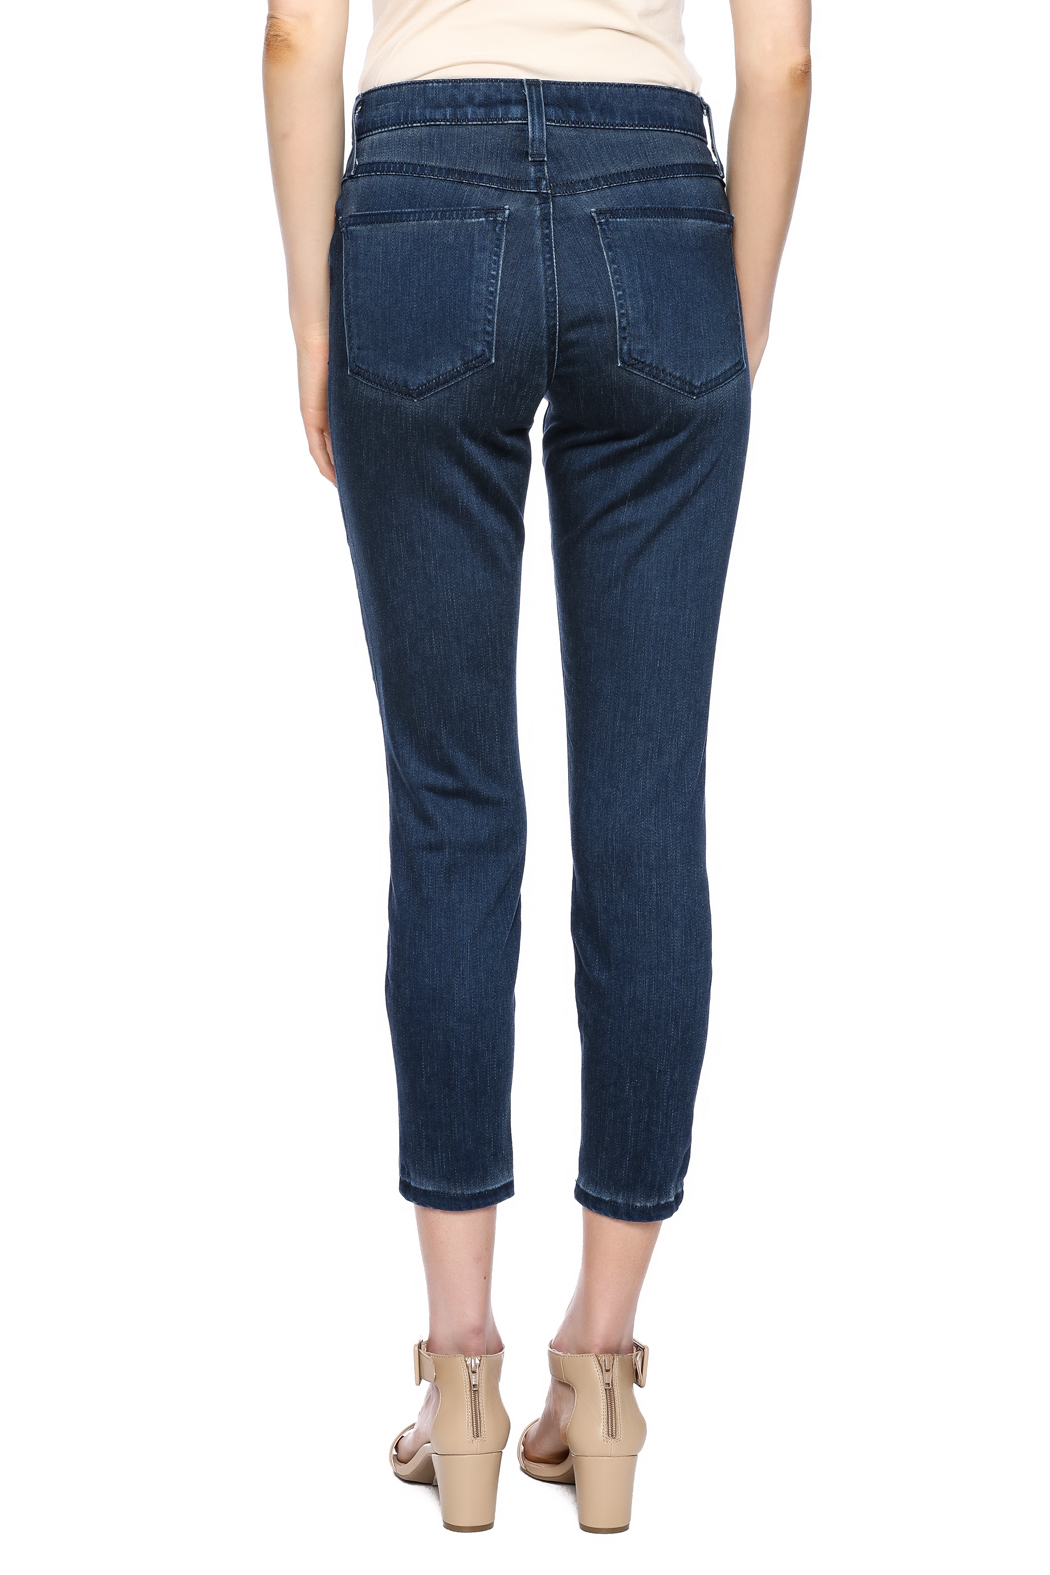 Second Yoga Jeans Softest High Rise Jean - Back Cropped Image